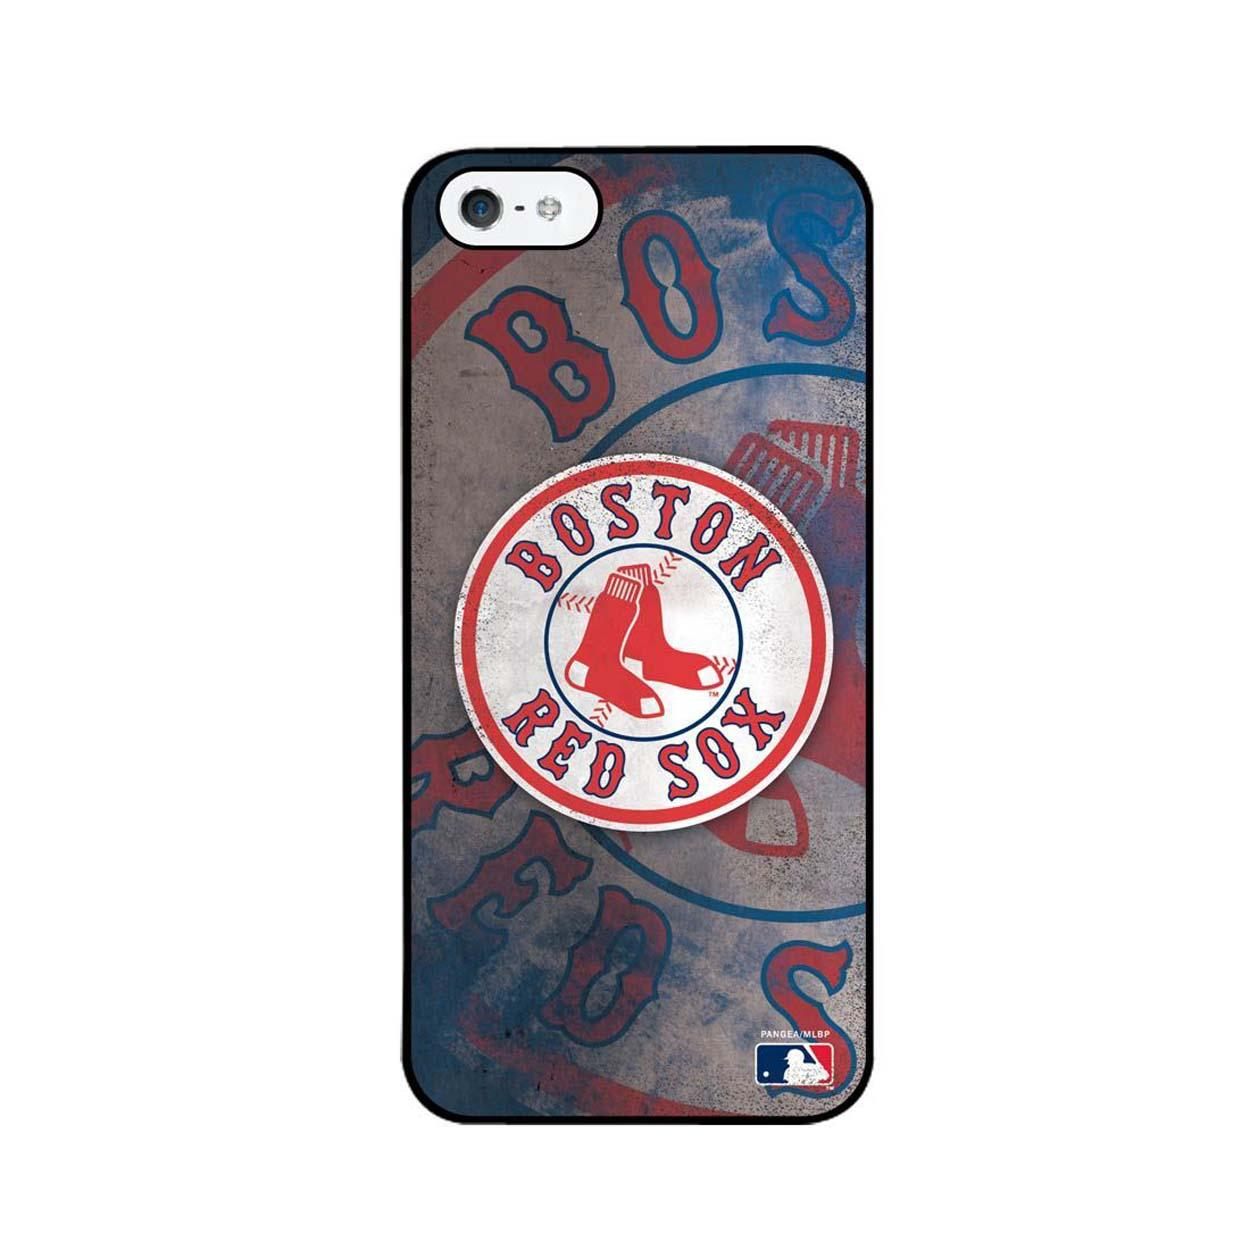 Oversized Iphone 5 Case - Boston Red Sox Boston Red Sox PANGBBBOSIP5O